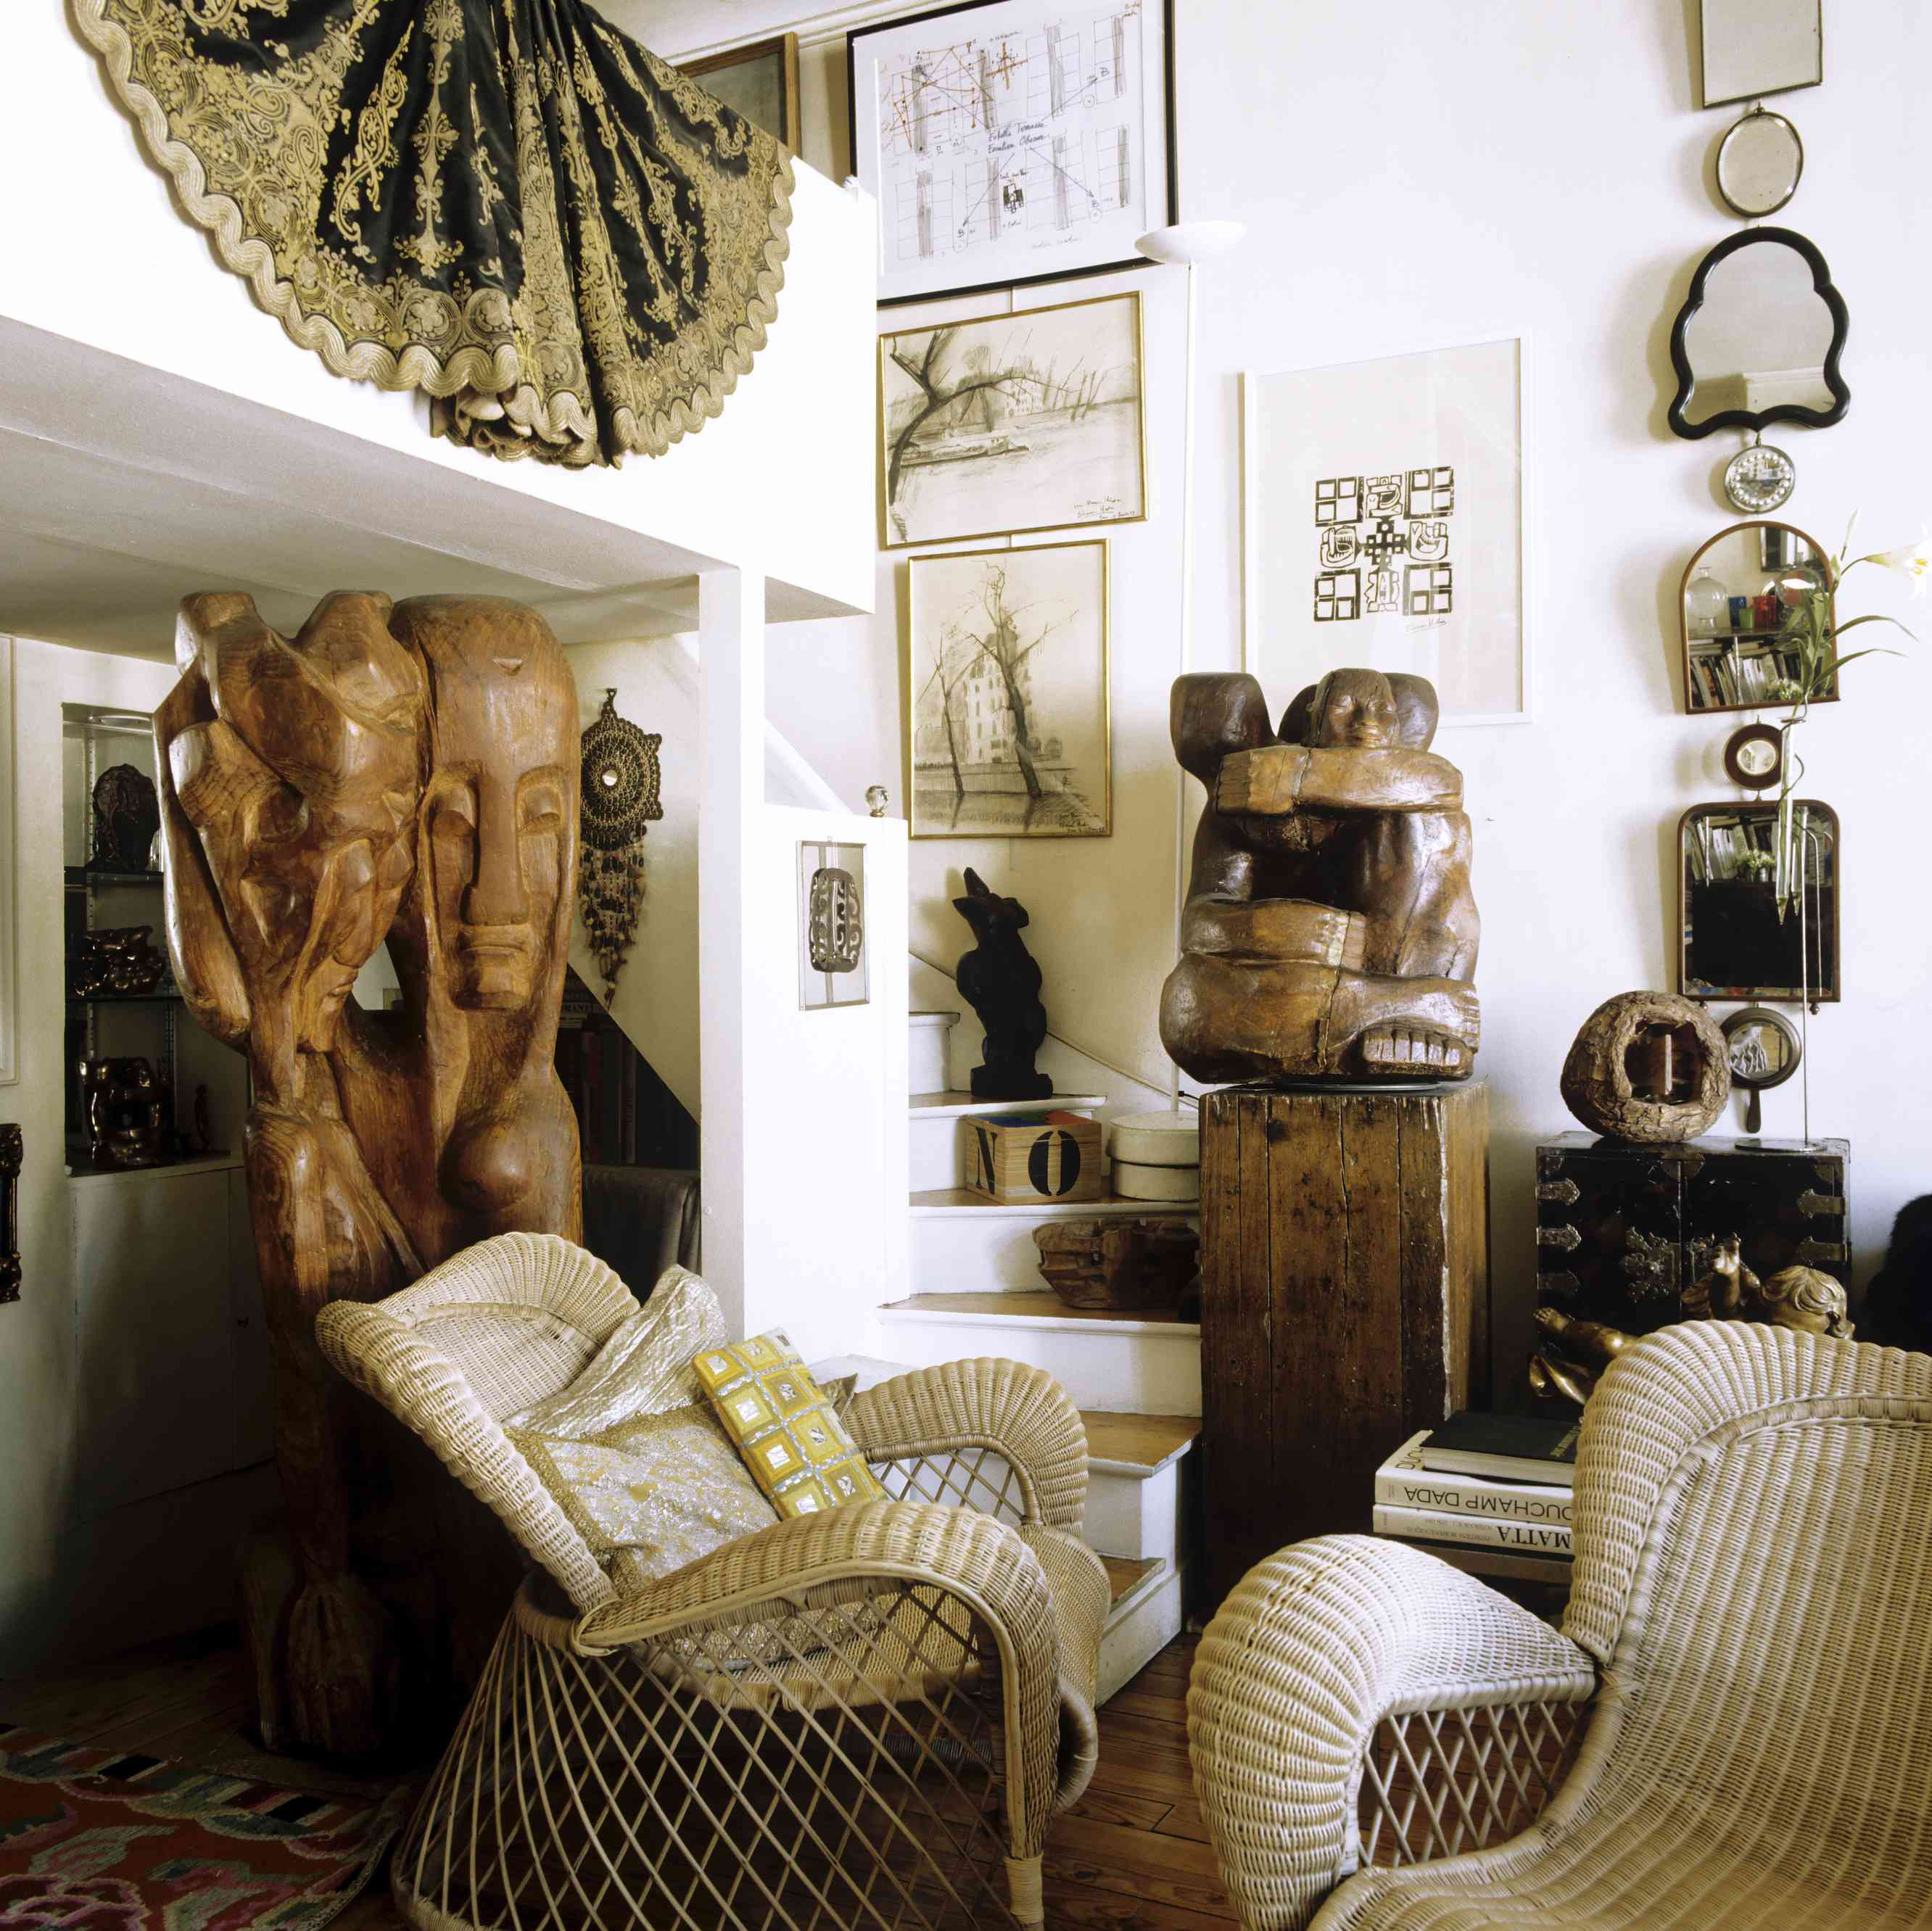 An eclectic living area with an impressive collection of artwork including several largescale wooden sculptures.